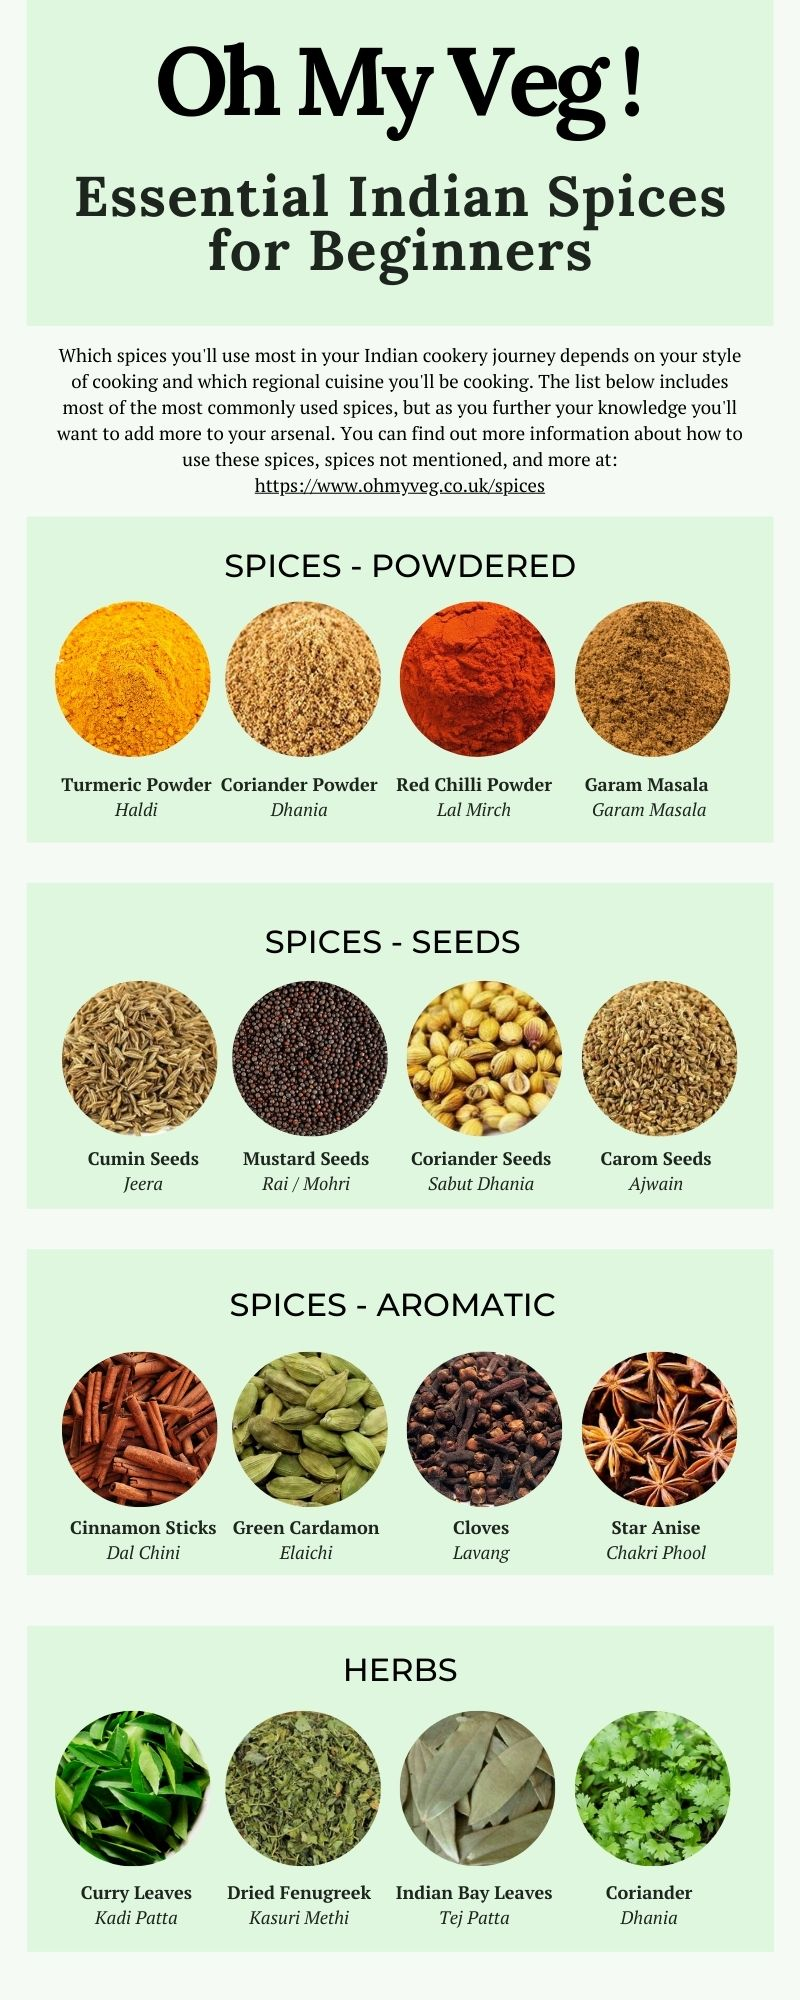 An Infographic detailing essential spices for beginners to Indian cooking